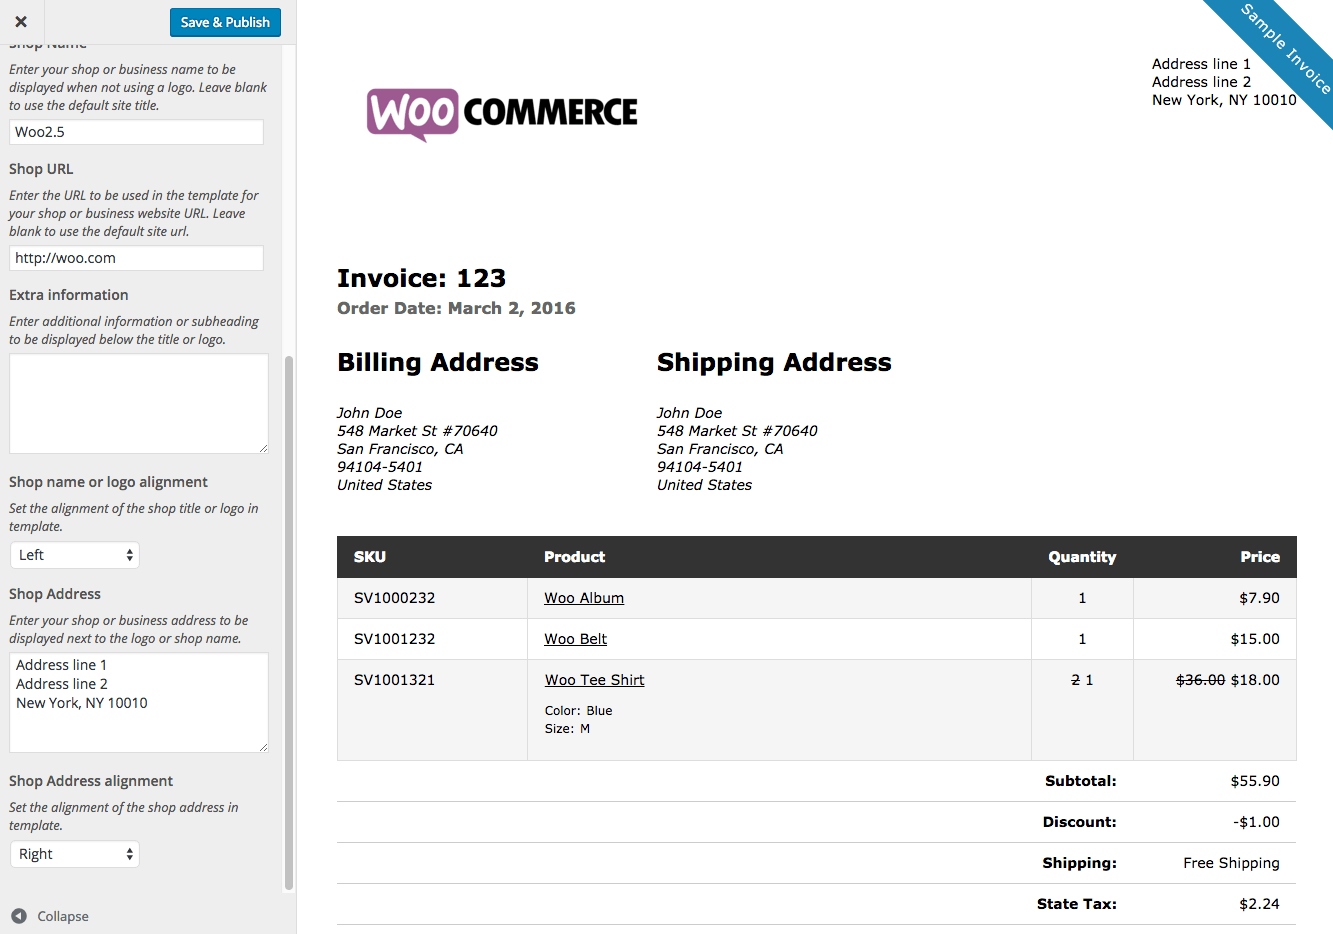 Angkajituus  Pleasing Woocommerce Print Invoices Amp Packing Lists  Woocommerce Docs With Lovely Woocommerce Print Invoices  Packing Lists Customizer With Divine Cheap Invoice Software Also Provisional Invoice In Addition Invoice And Billing And Vehicle Invoice Price By Vin As Well As Blank Invoice Document Additionally Invoice Prices Of New Cars From Docswoocommercecom With Angkajituus  Lovely Woocommerce Print Invoices Amp Packing Lists  Woocommerce Docs With Divine Woocommerce Print Invoices  Packing Lists Customizer And Pleasing Cheap Invoice Software Also Provisional Invoice In Addition Invoice And Billing From Docswoocommercecom